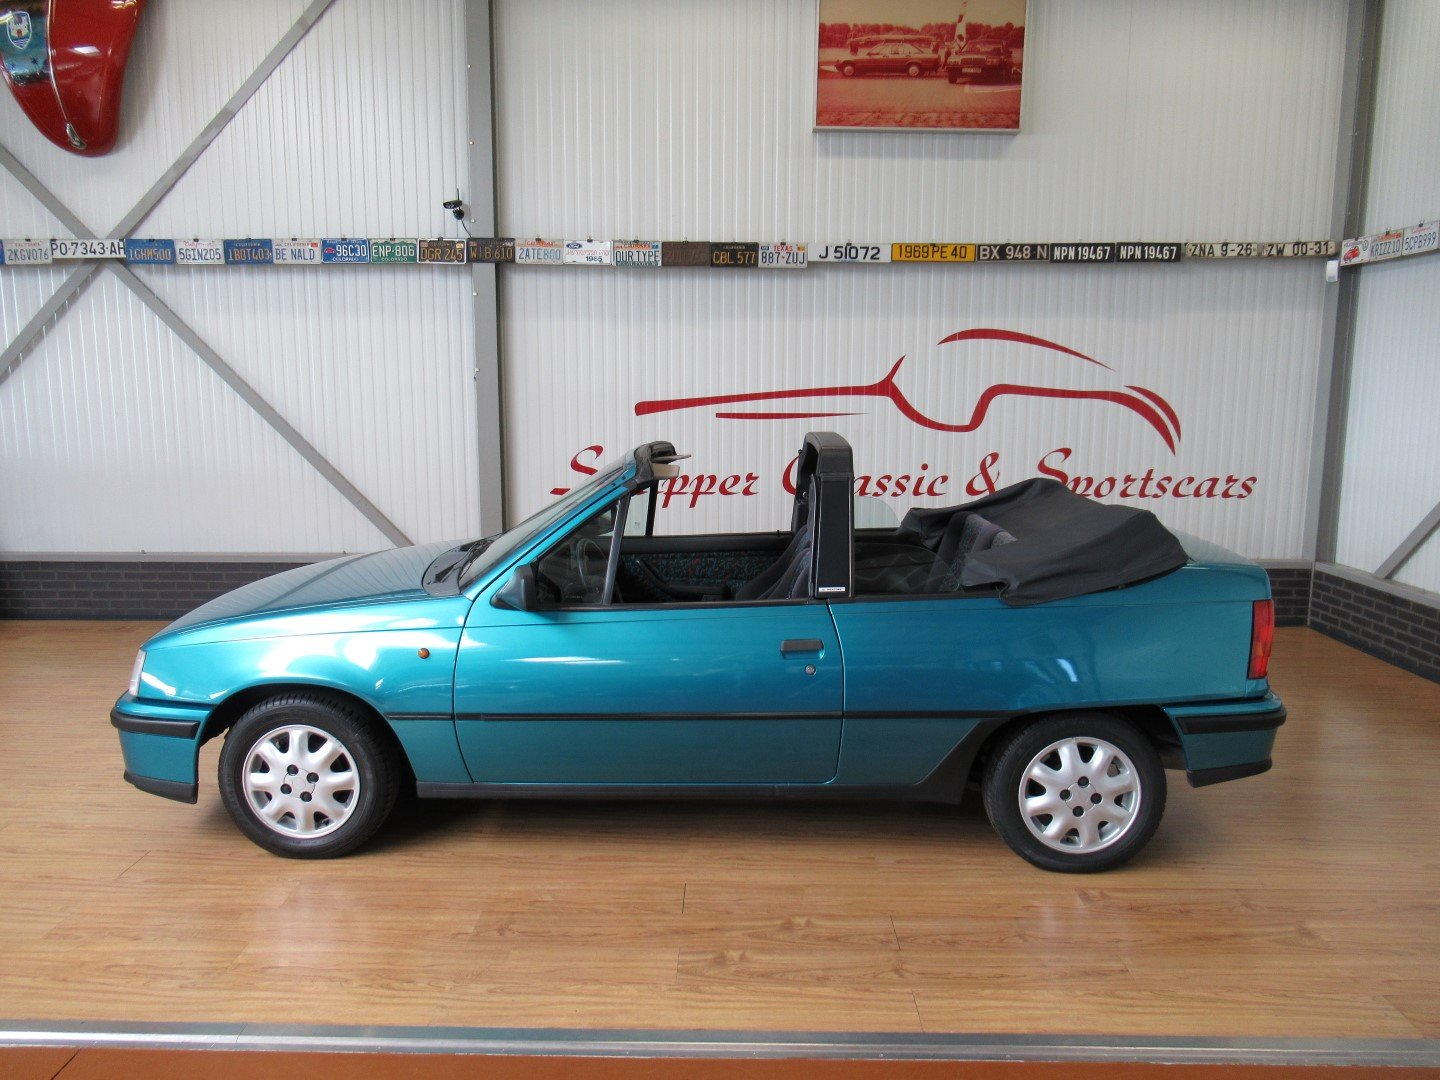 1993 Opel Kadett E Cabrio Edition 1.6i Bertone last model year For Sale (picture 2 of 6)